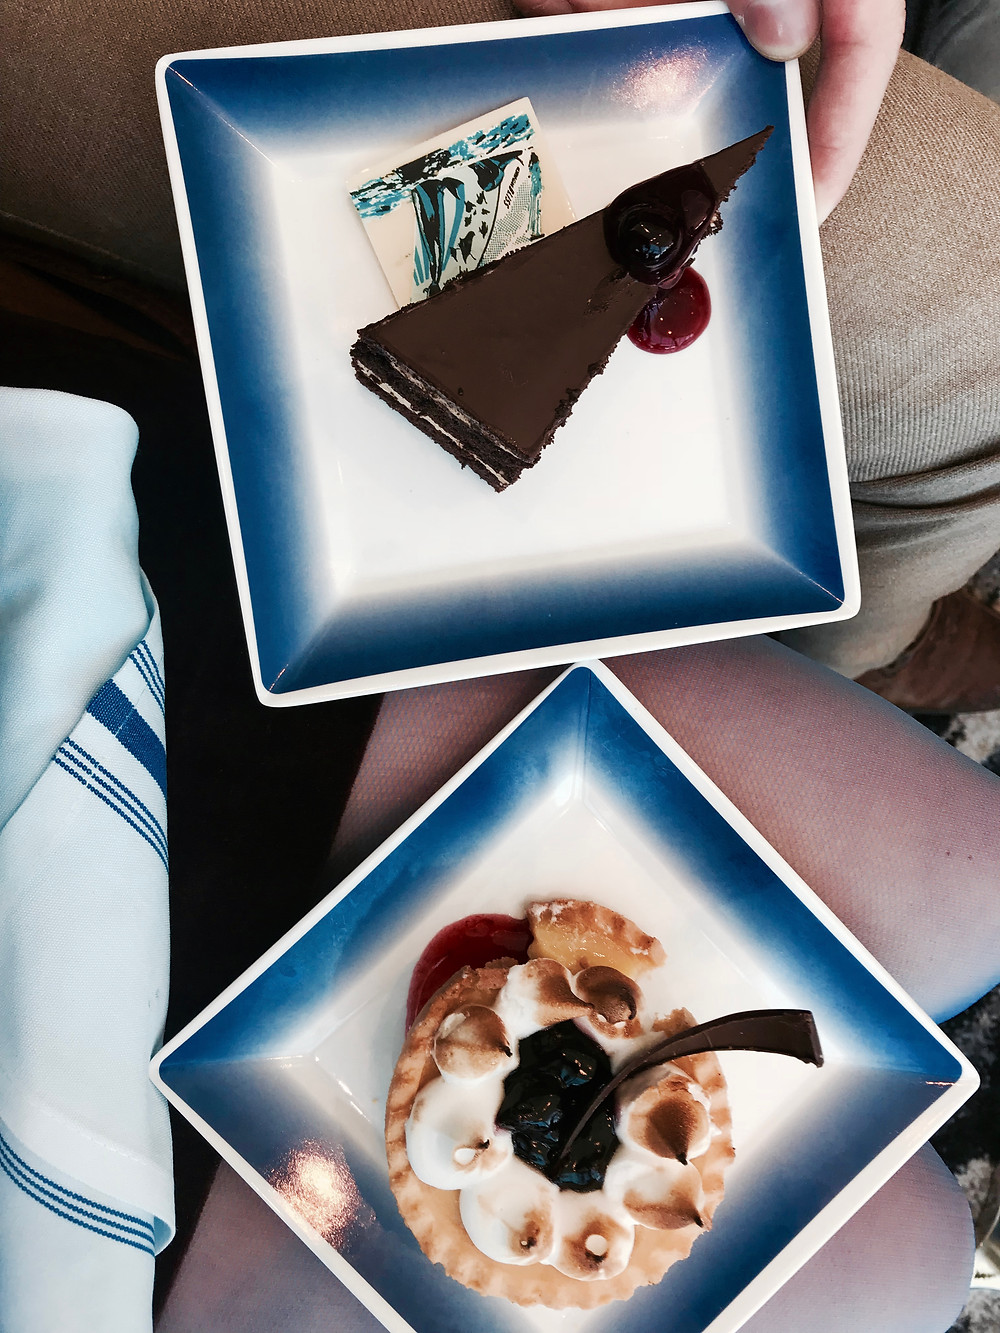 Desserts. Andrew had the chocolate cake and I had a blueberry lemon tarte